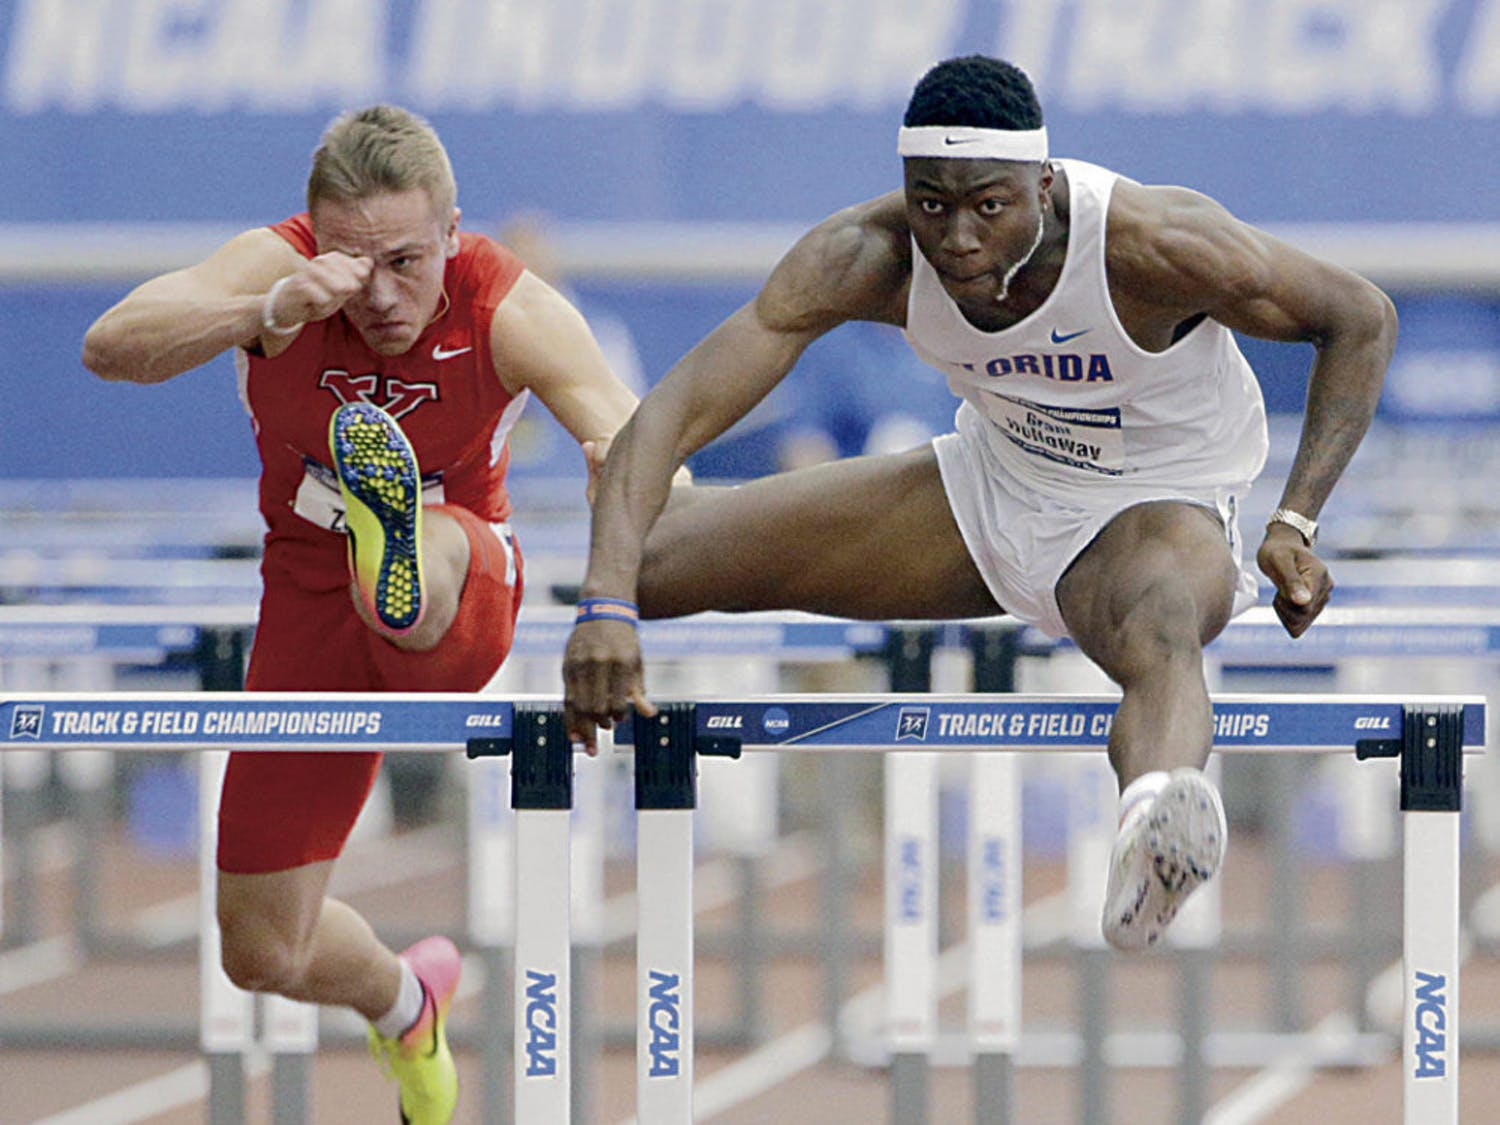 Junior Grant Holloway started the season with a national No. 2 long-jump ranking at 8.02 meters, a national first place 60 meter hurdle time of 7.49 seconds and a national fourth-place 200 meter dash ranking with a time of 20.69 seconds.